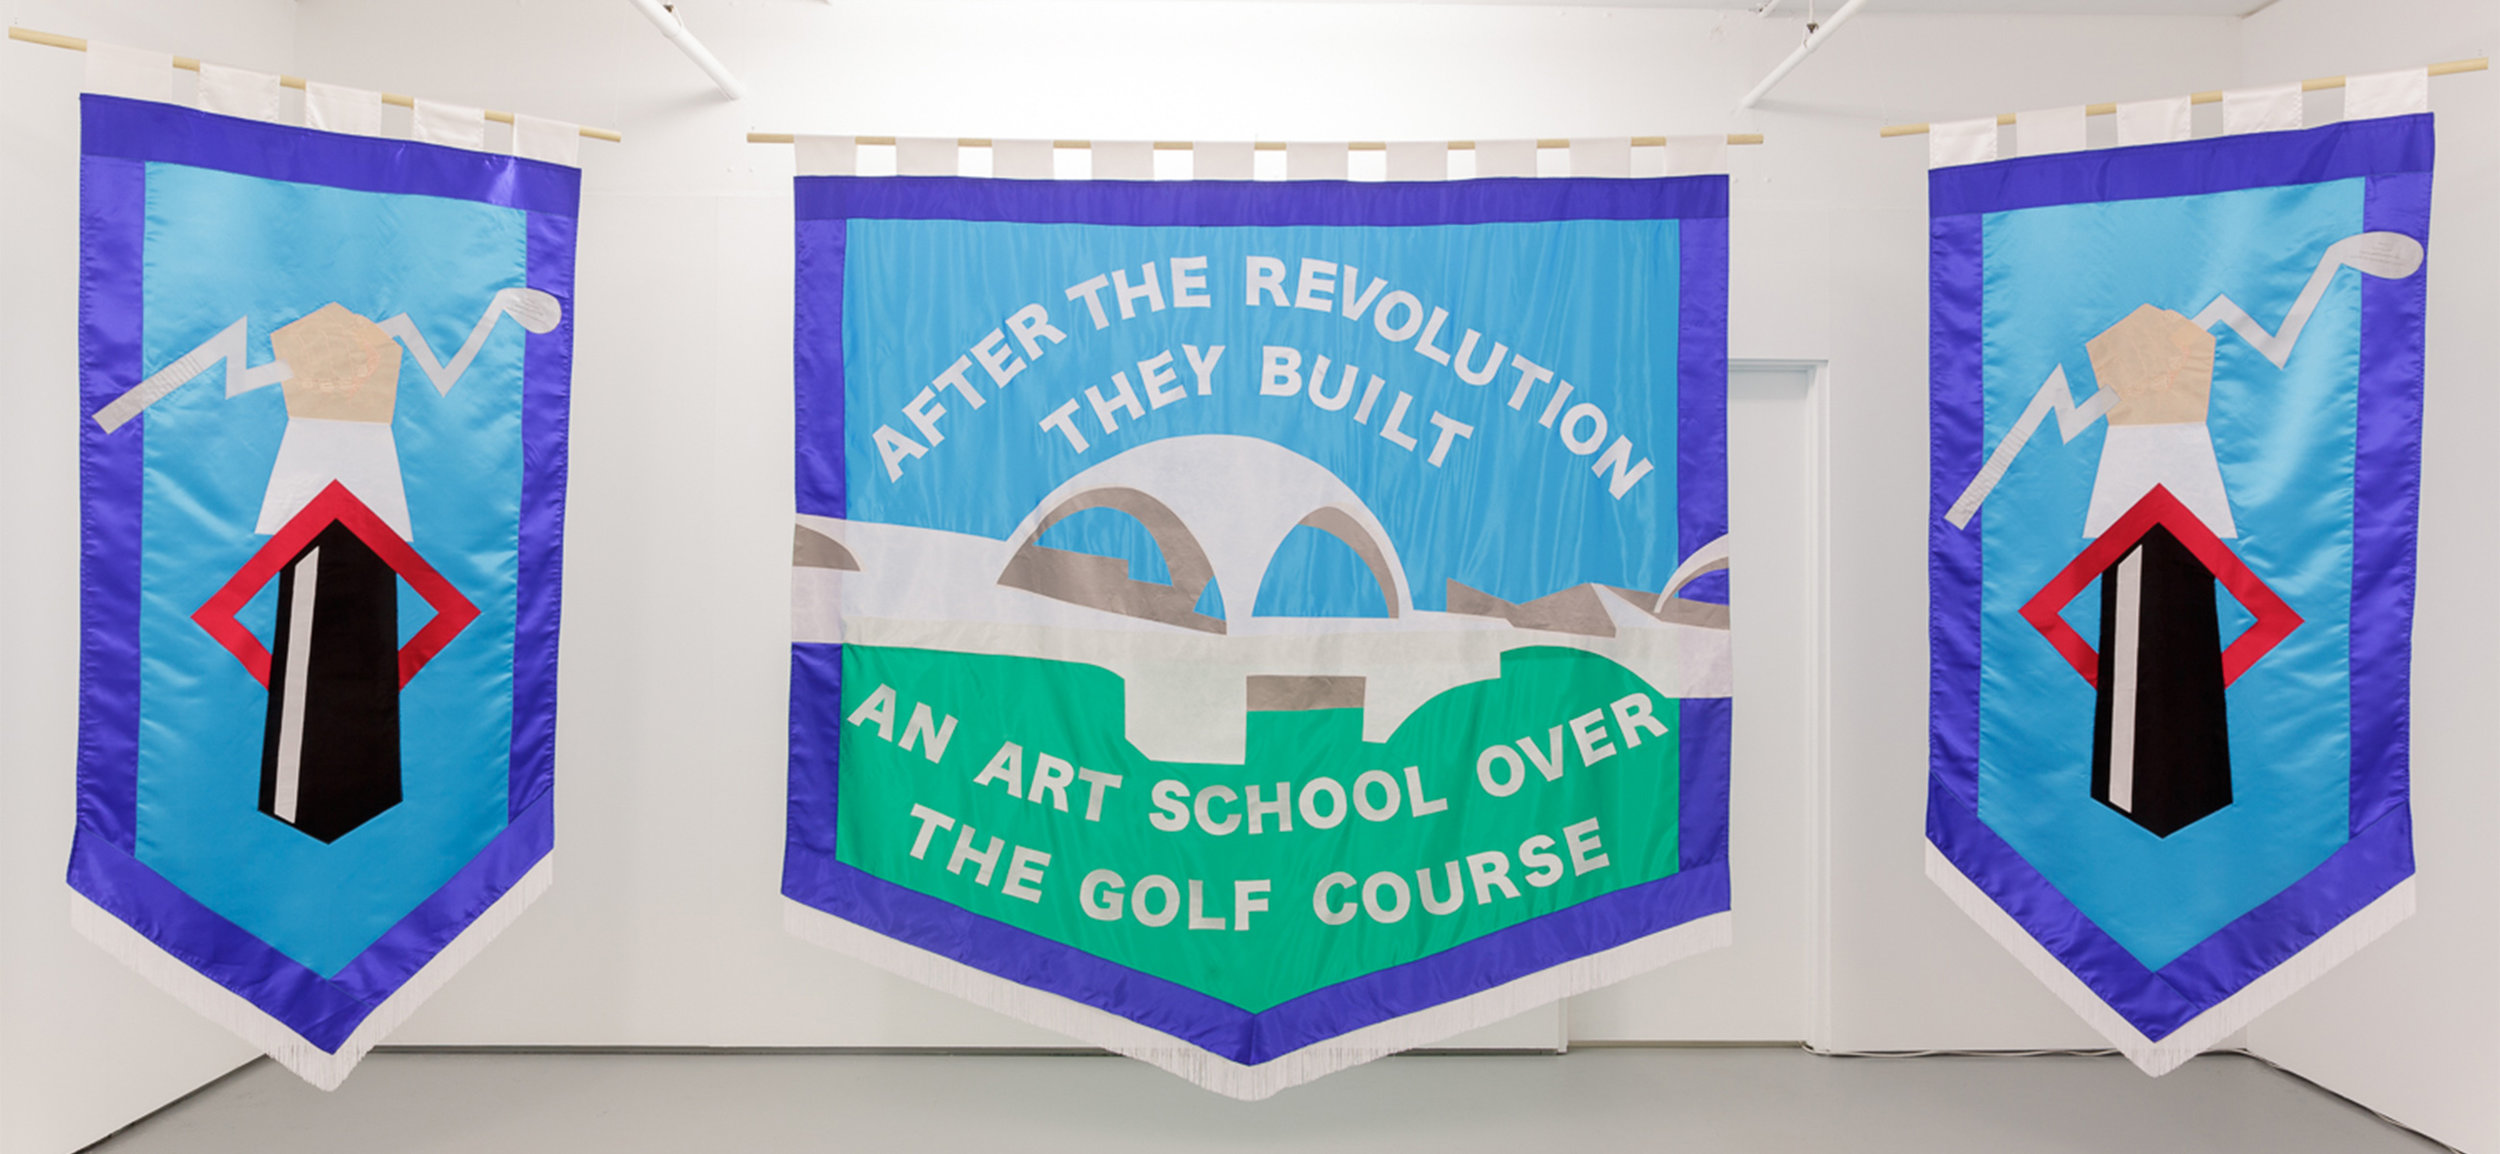 After the Revolution They Built an Art School Over the Golf Course